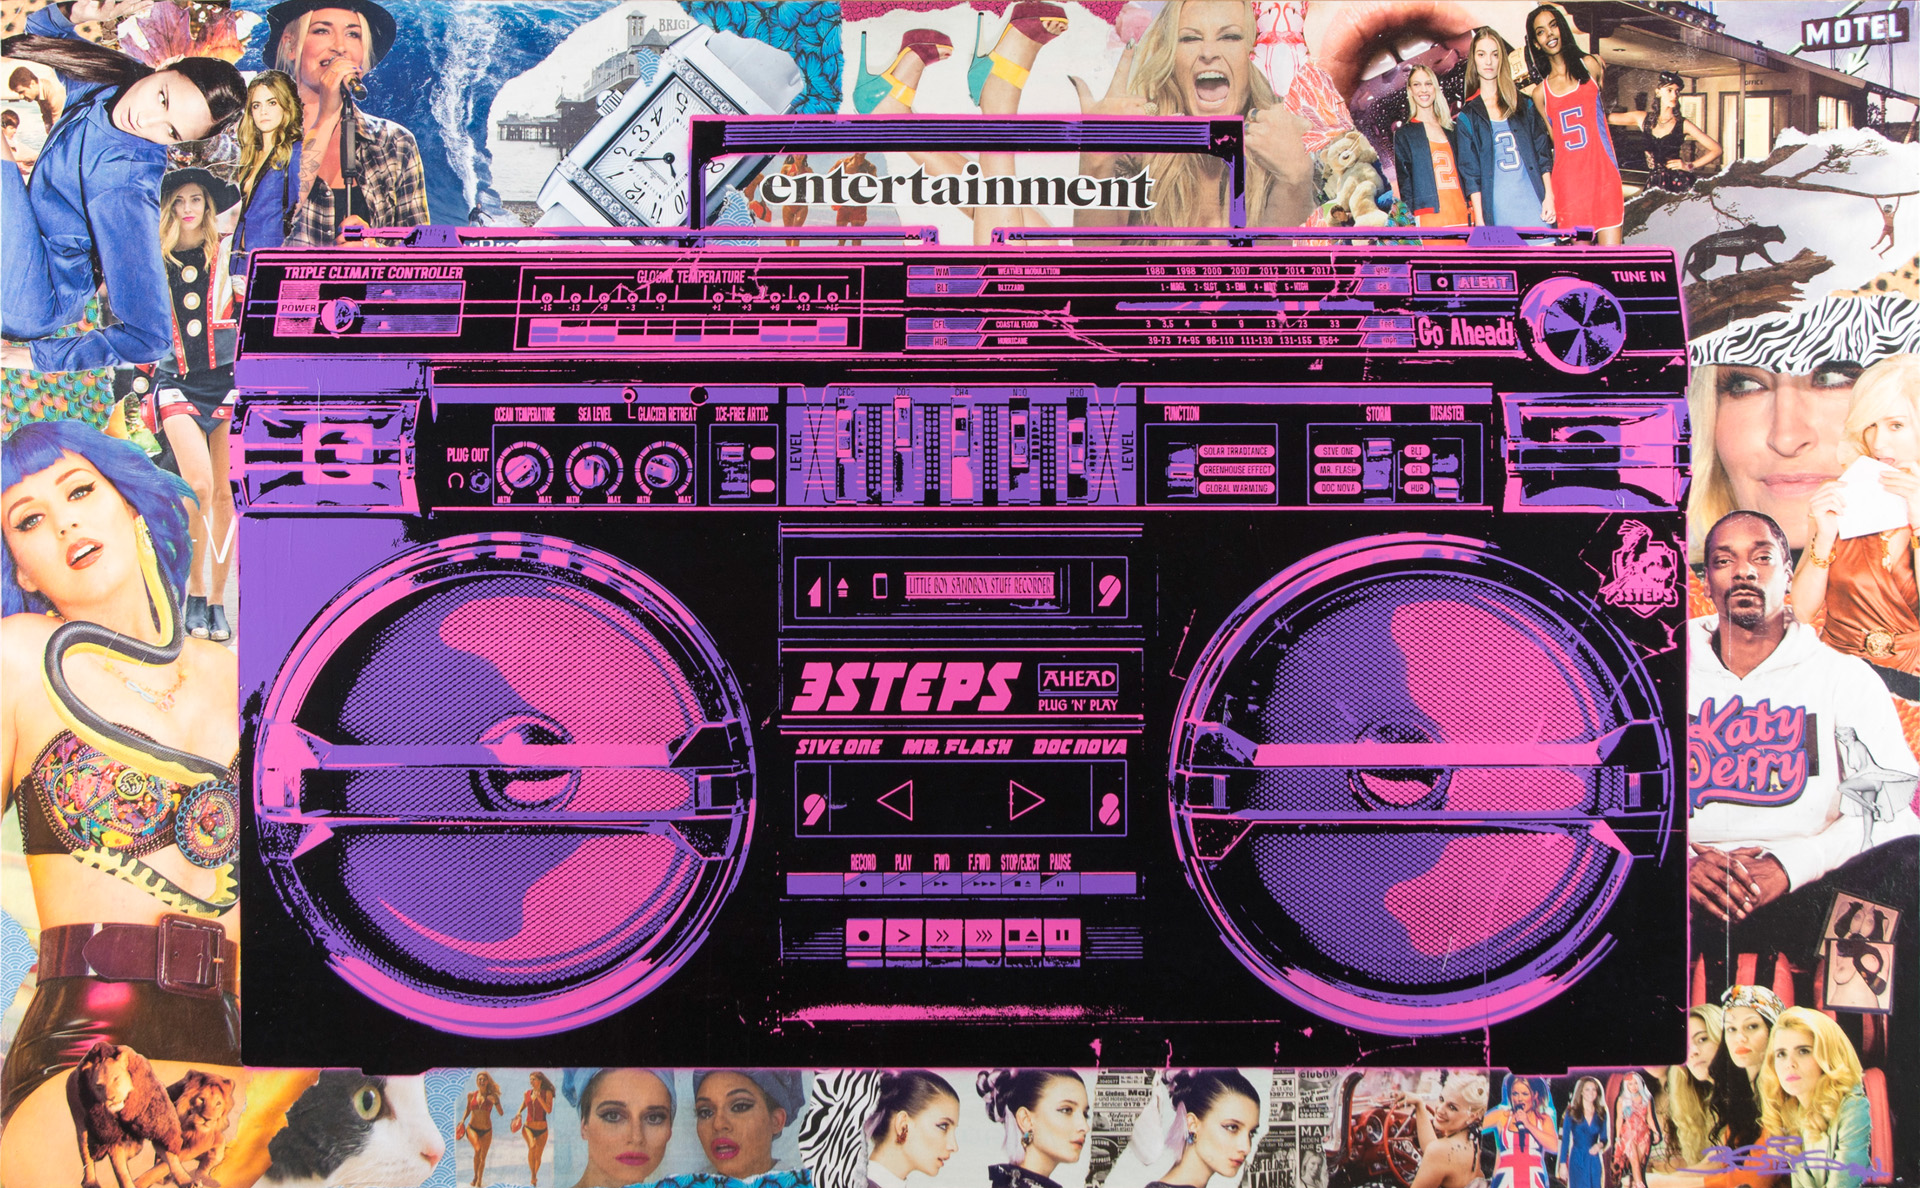 Boombox # Clippings of Entertainment